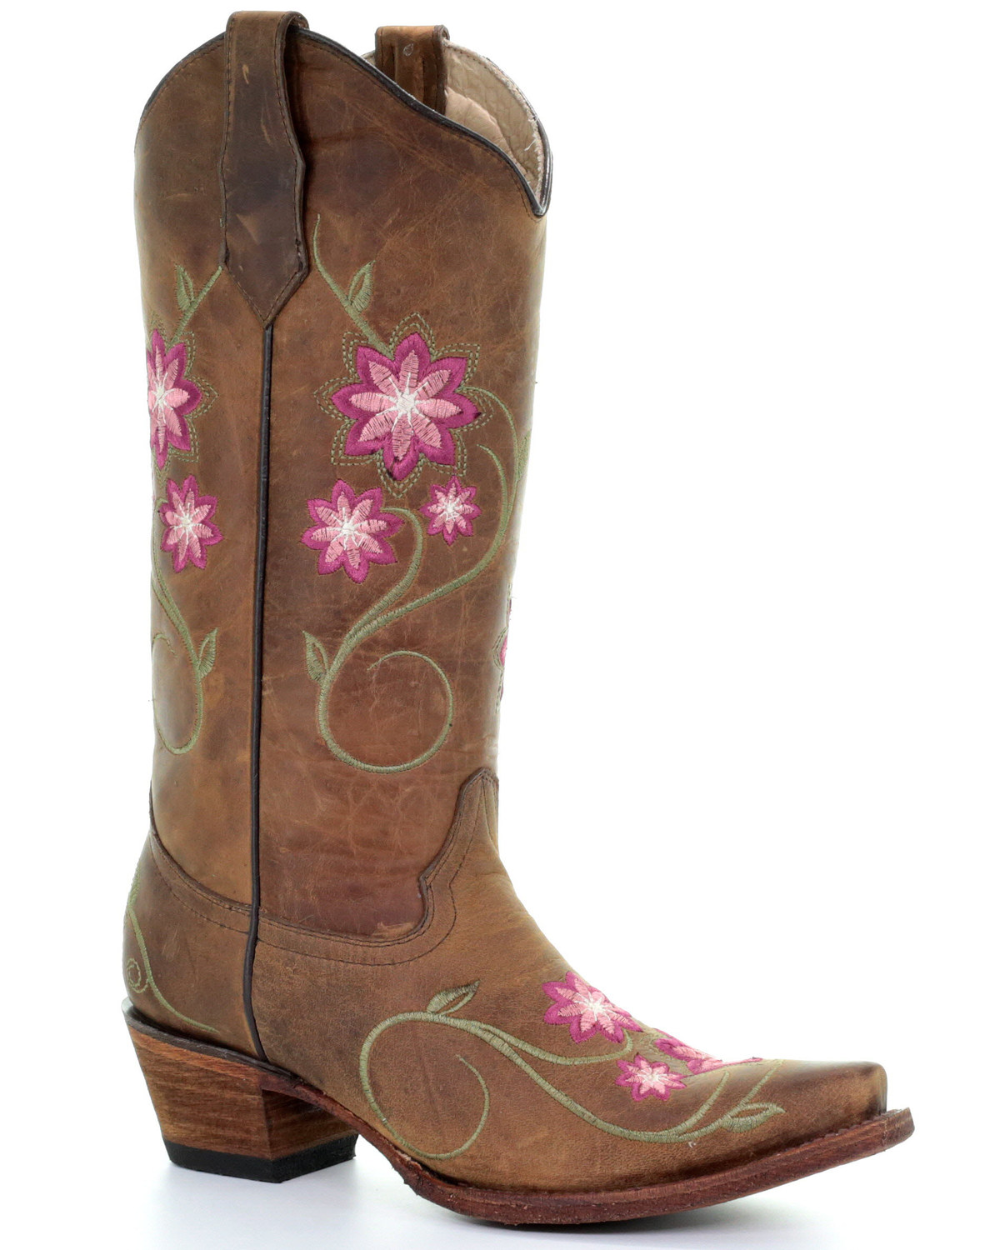 Embroidered Flower Design Kid,s Genuine Leather Cowboy Western Snip Toe Boot